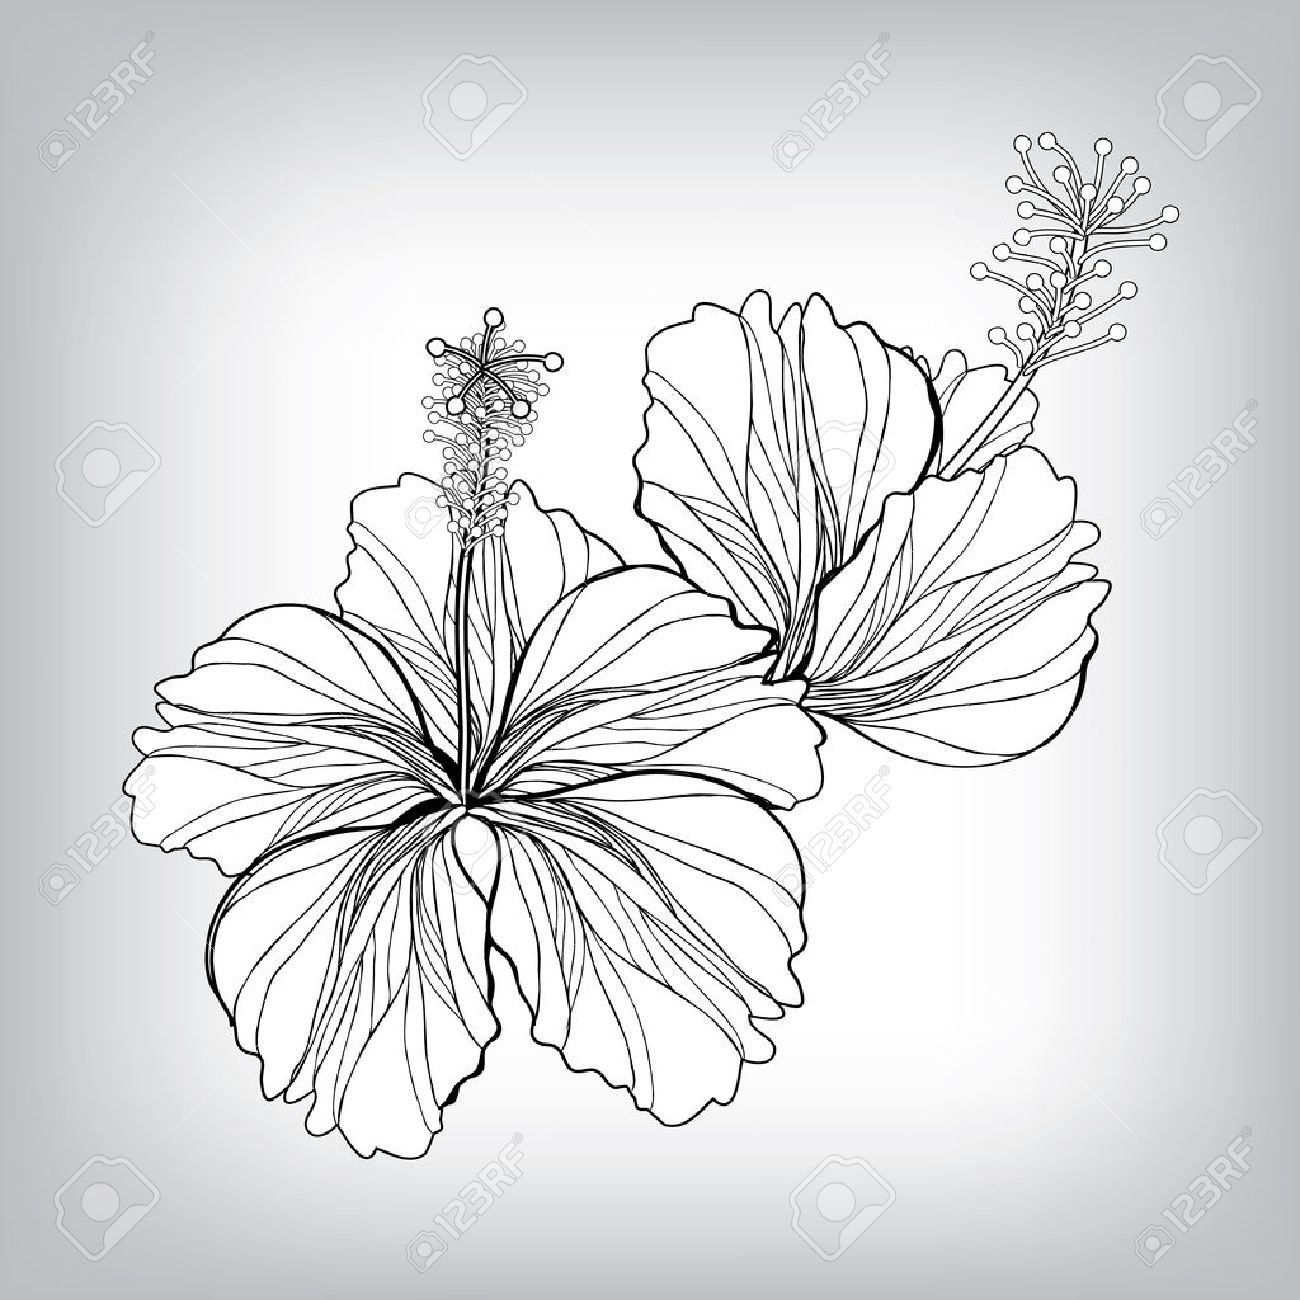 1300x1300 Hibiscus Flower Drawing. Elements For Design, Eps10 Vector